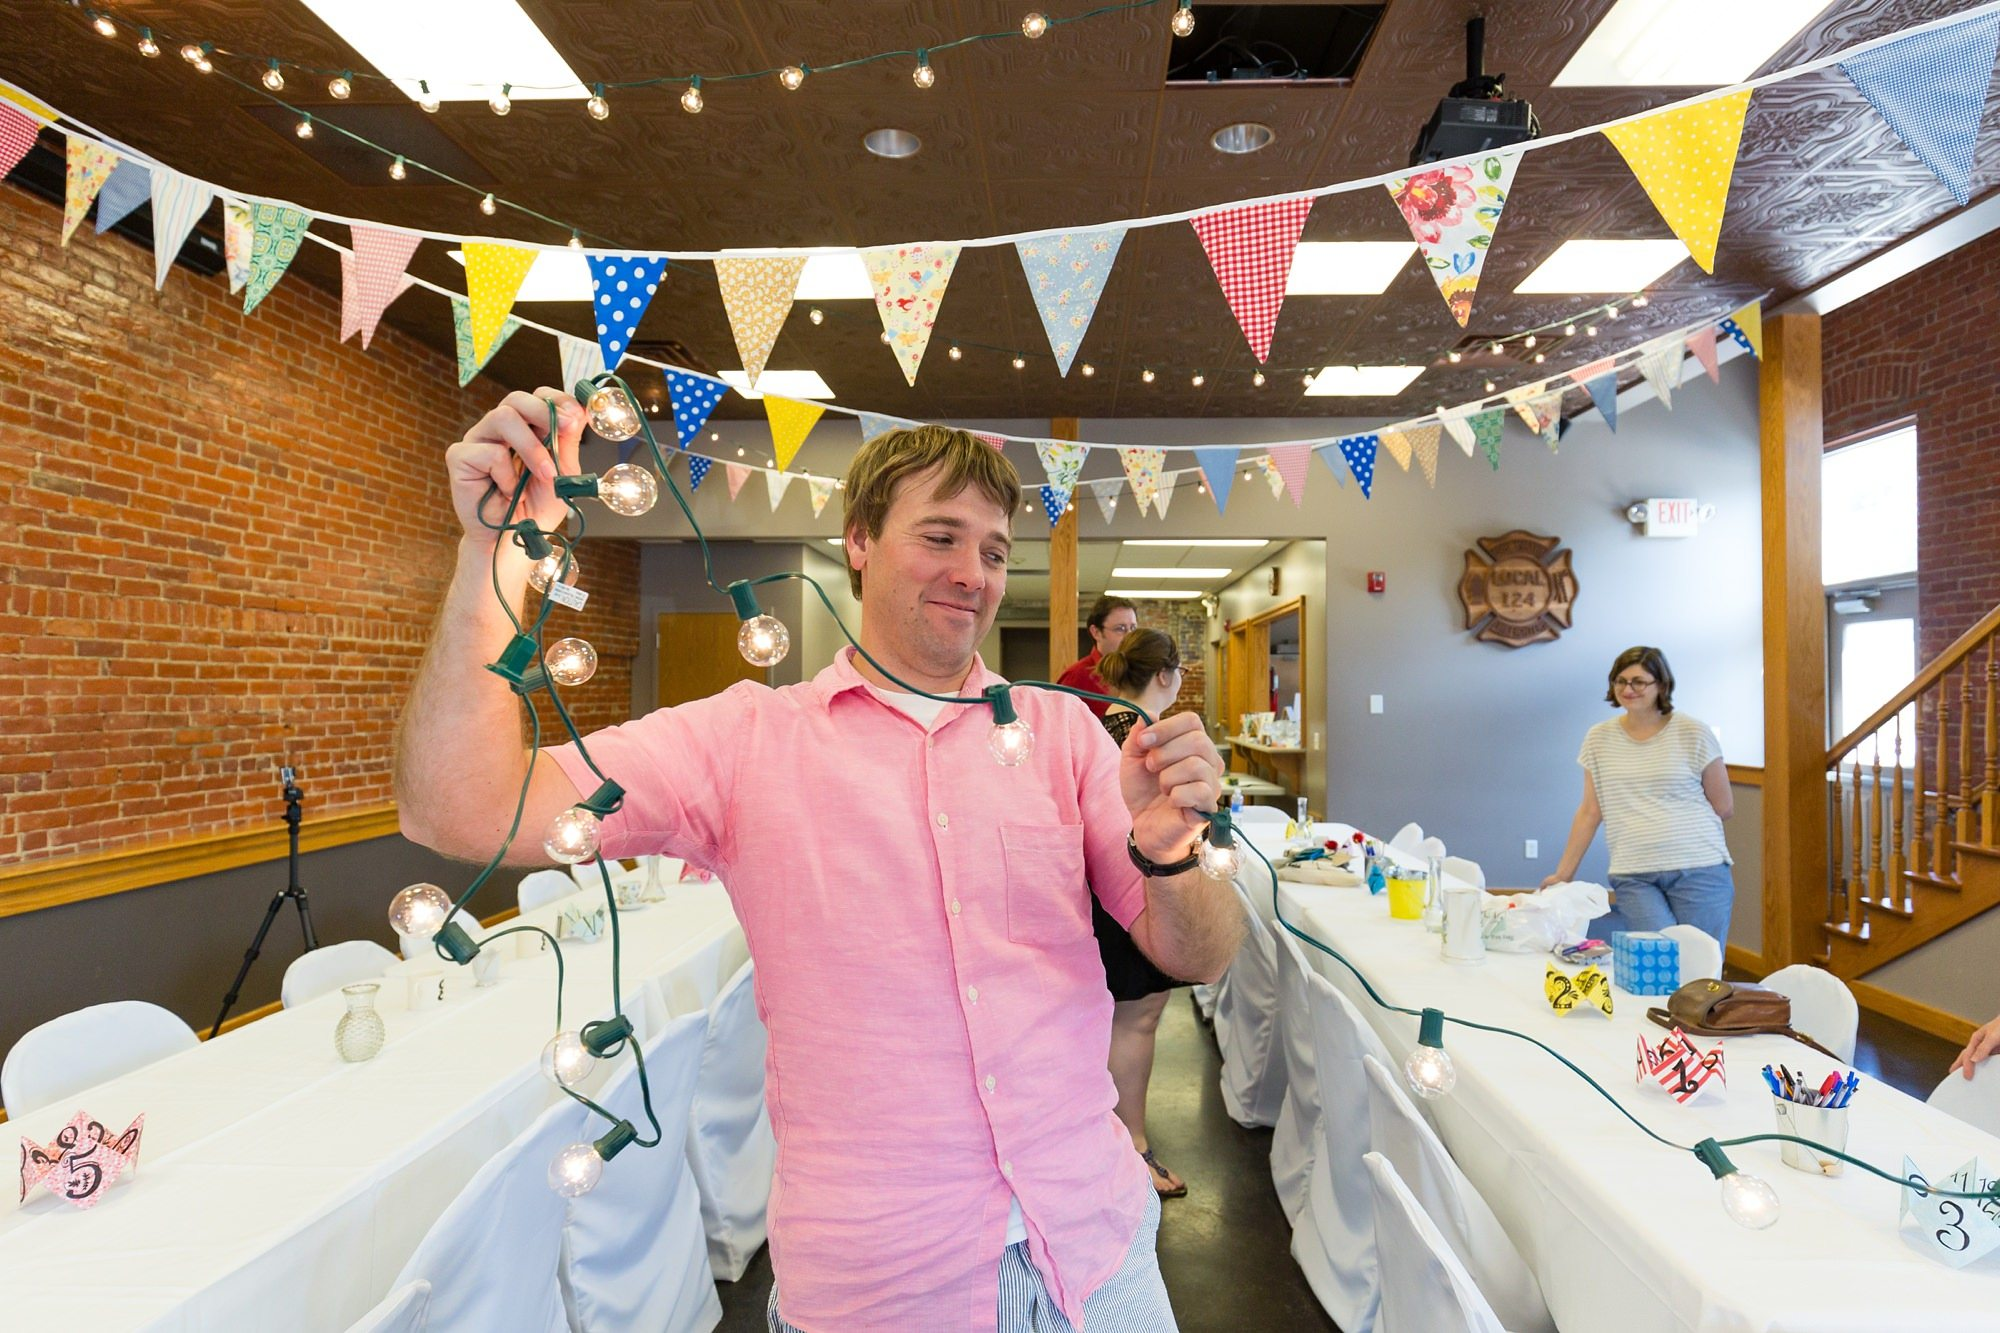 Groom decorates with bunting at destination wedding in Ft. Wayne Indiana